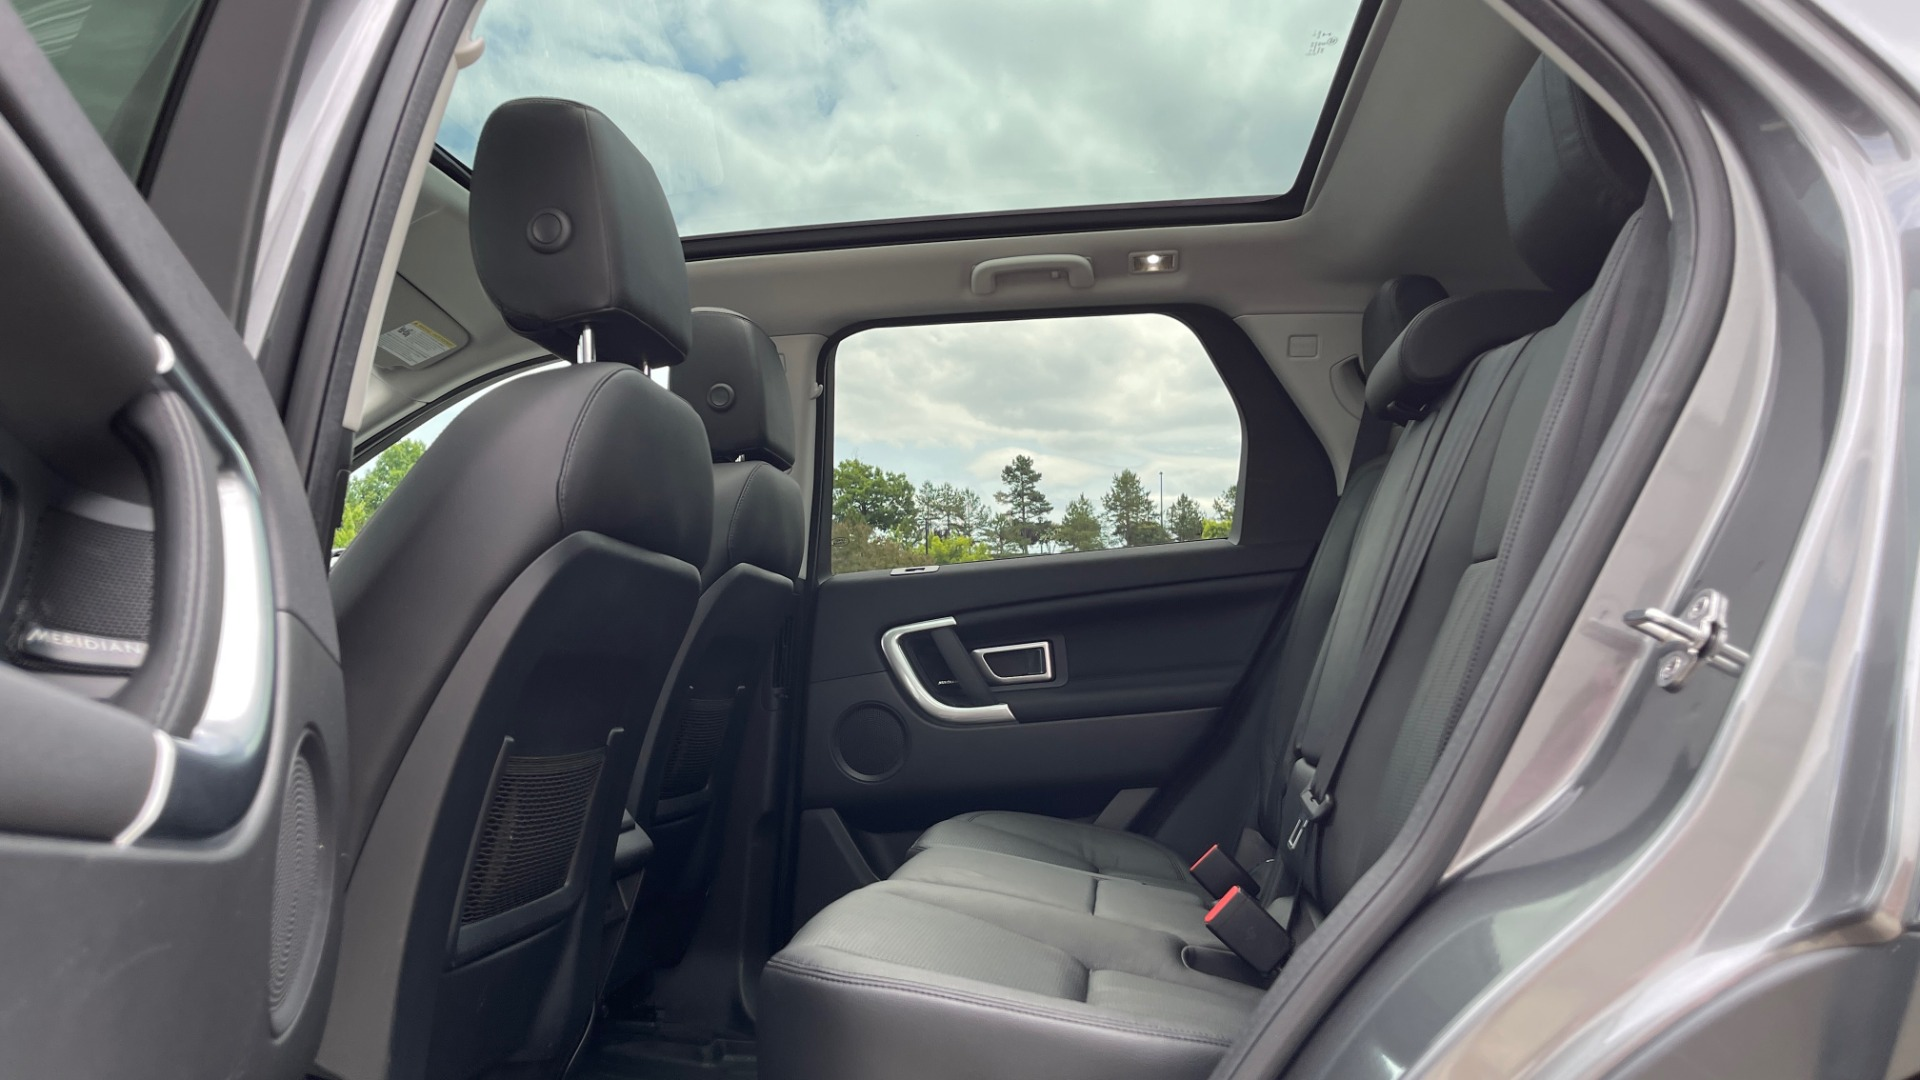 Used 2018 Land Rover DISCOVERY SPORT HSE 4WD / NAV / PANO-ROOF / MERIDIAN SND / HTD STS / LANE ASST / REARVIEW for sale $34,995 at Formula Imports in Charlotte NC 28227 59